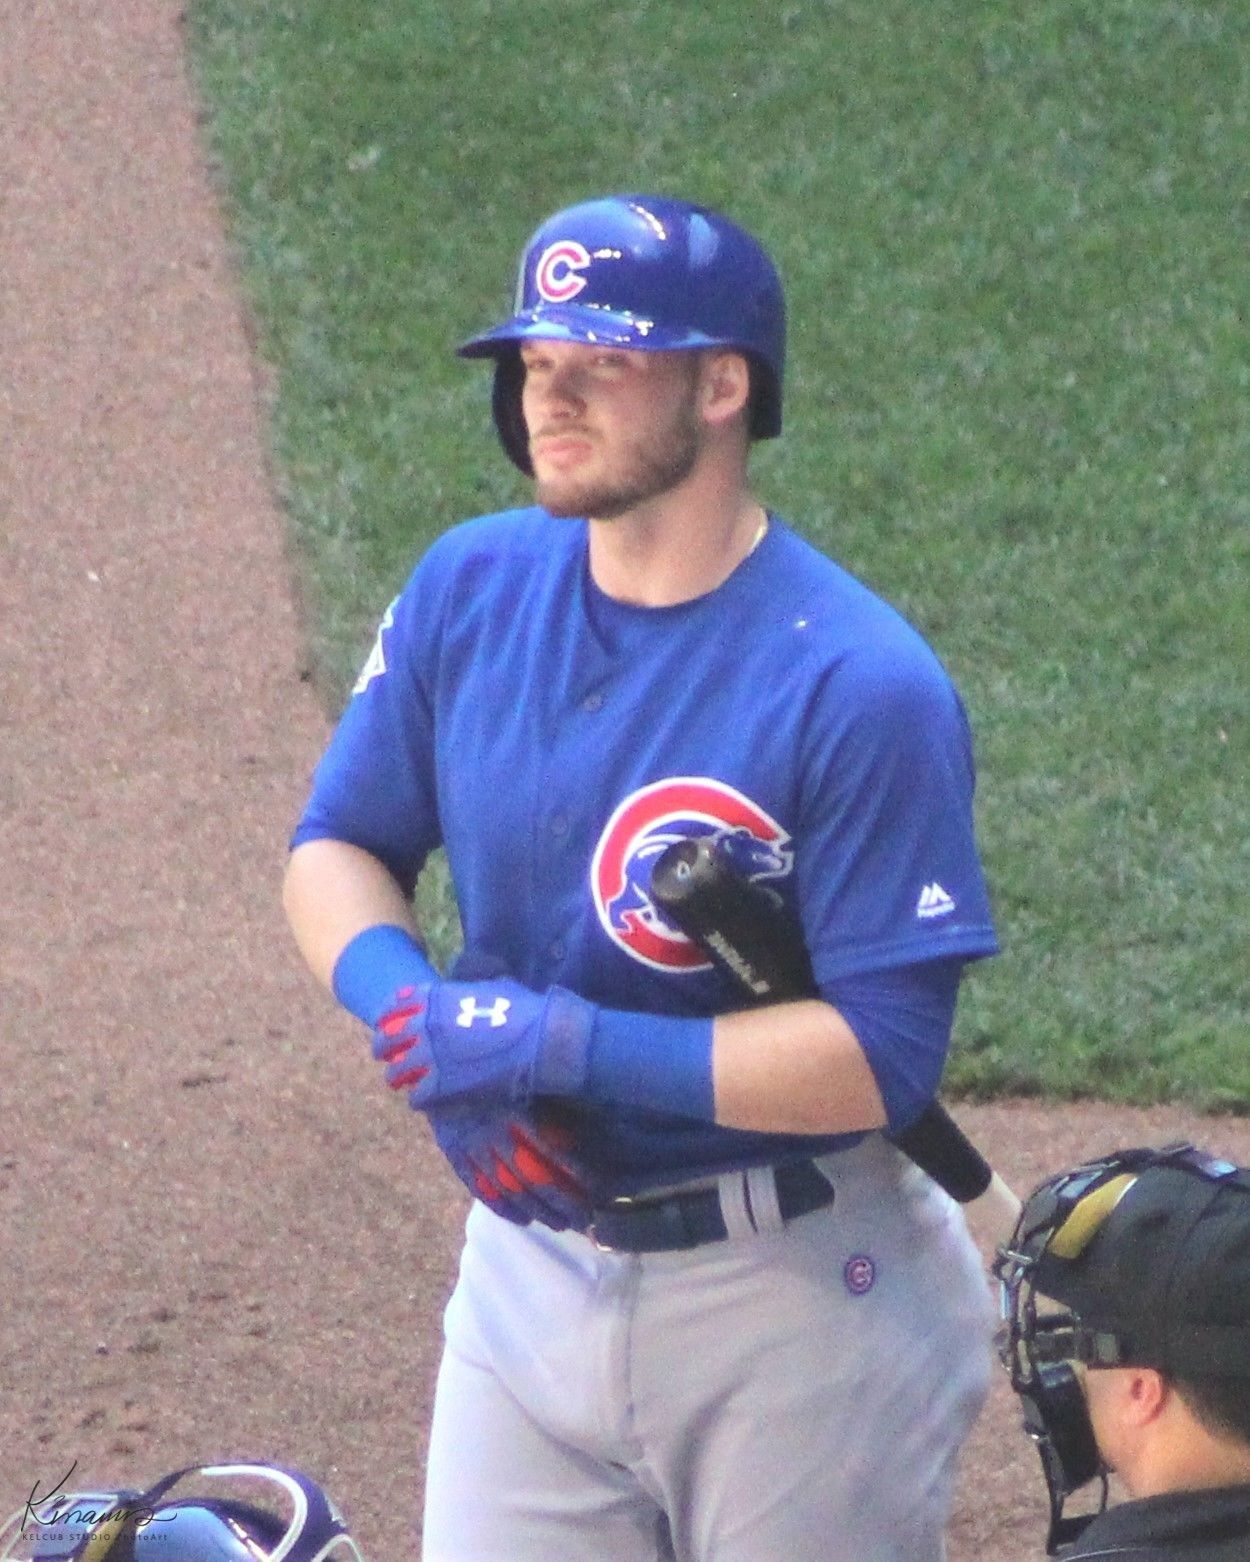 Primary image for Ian Happ Chicago Cubs Future Star Original Action Pic Var Sizes & Options 2018